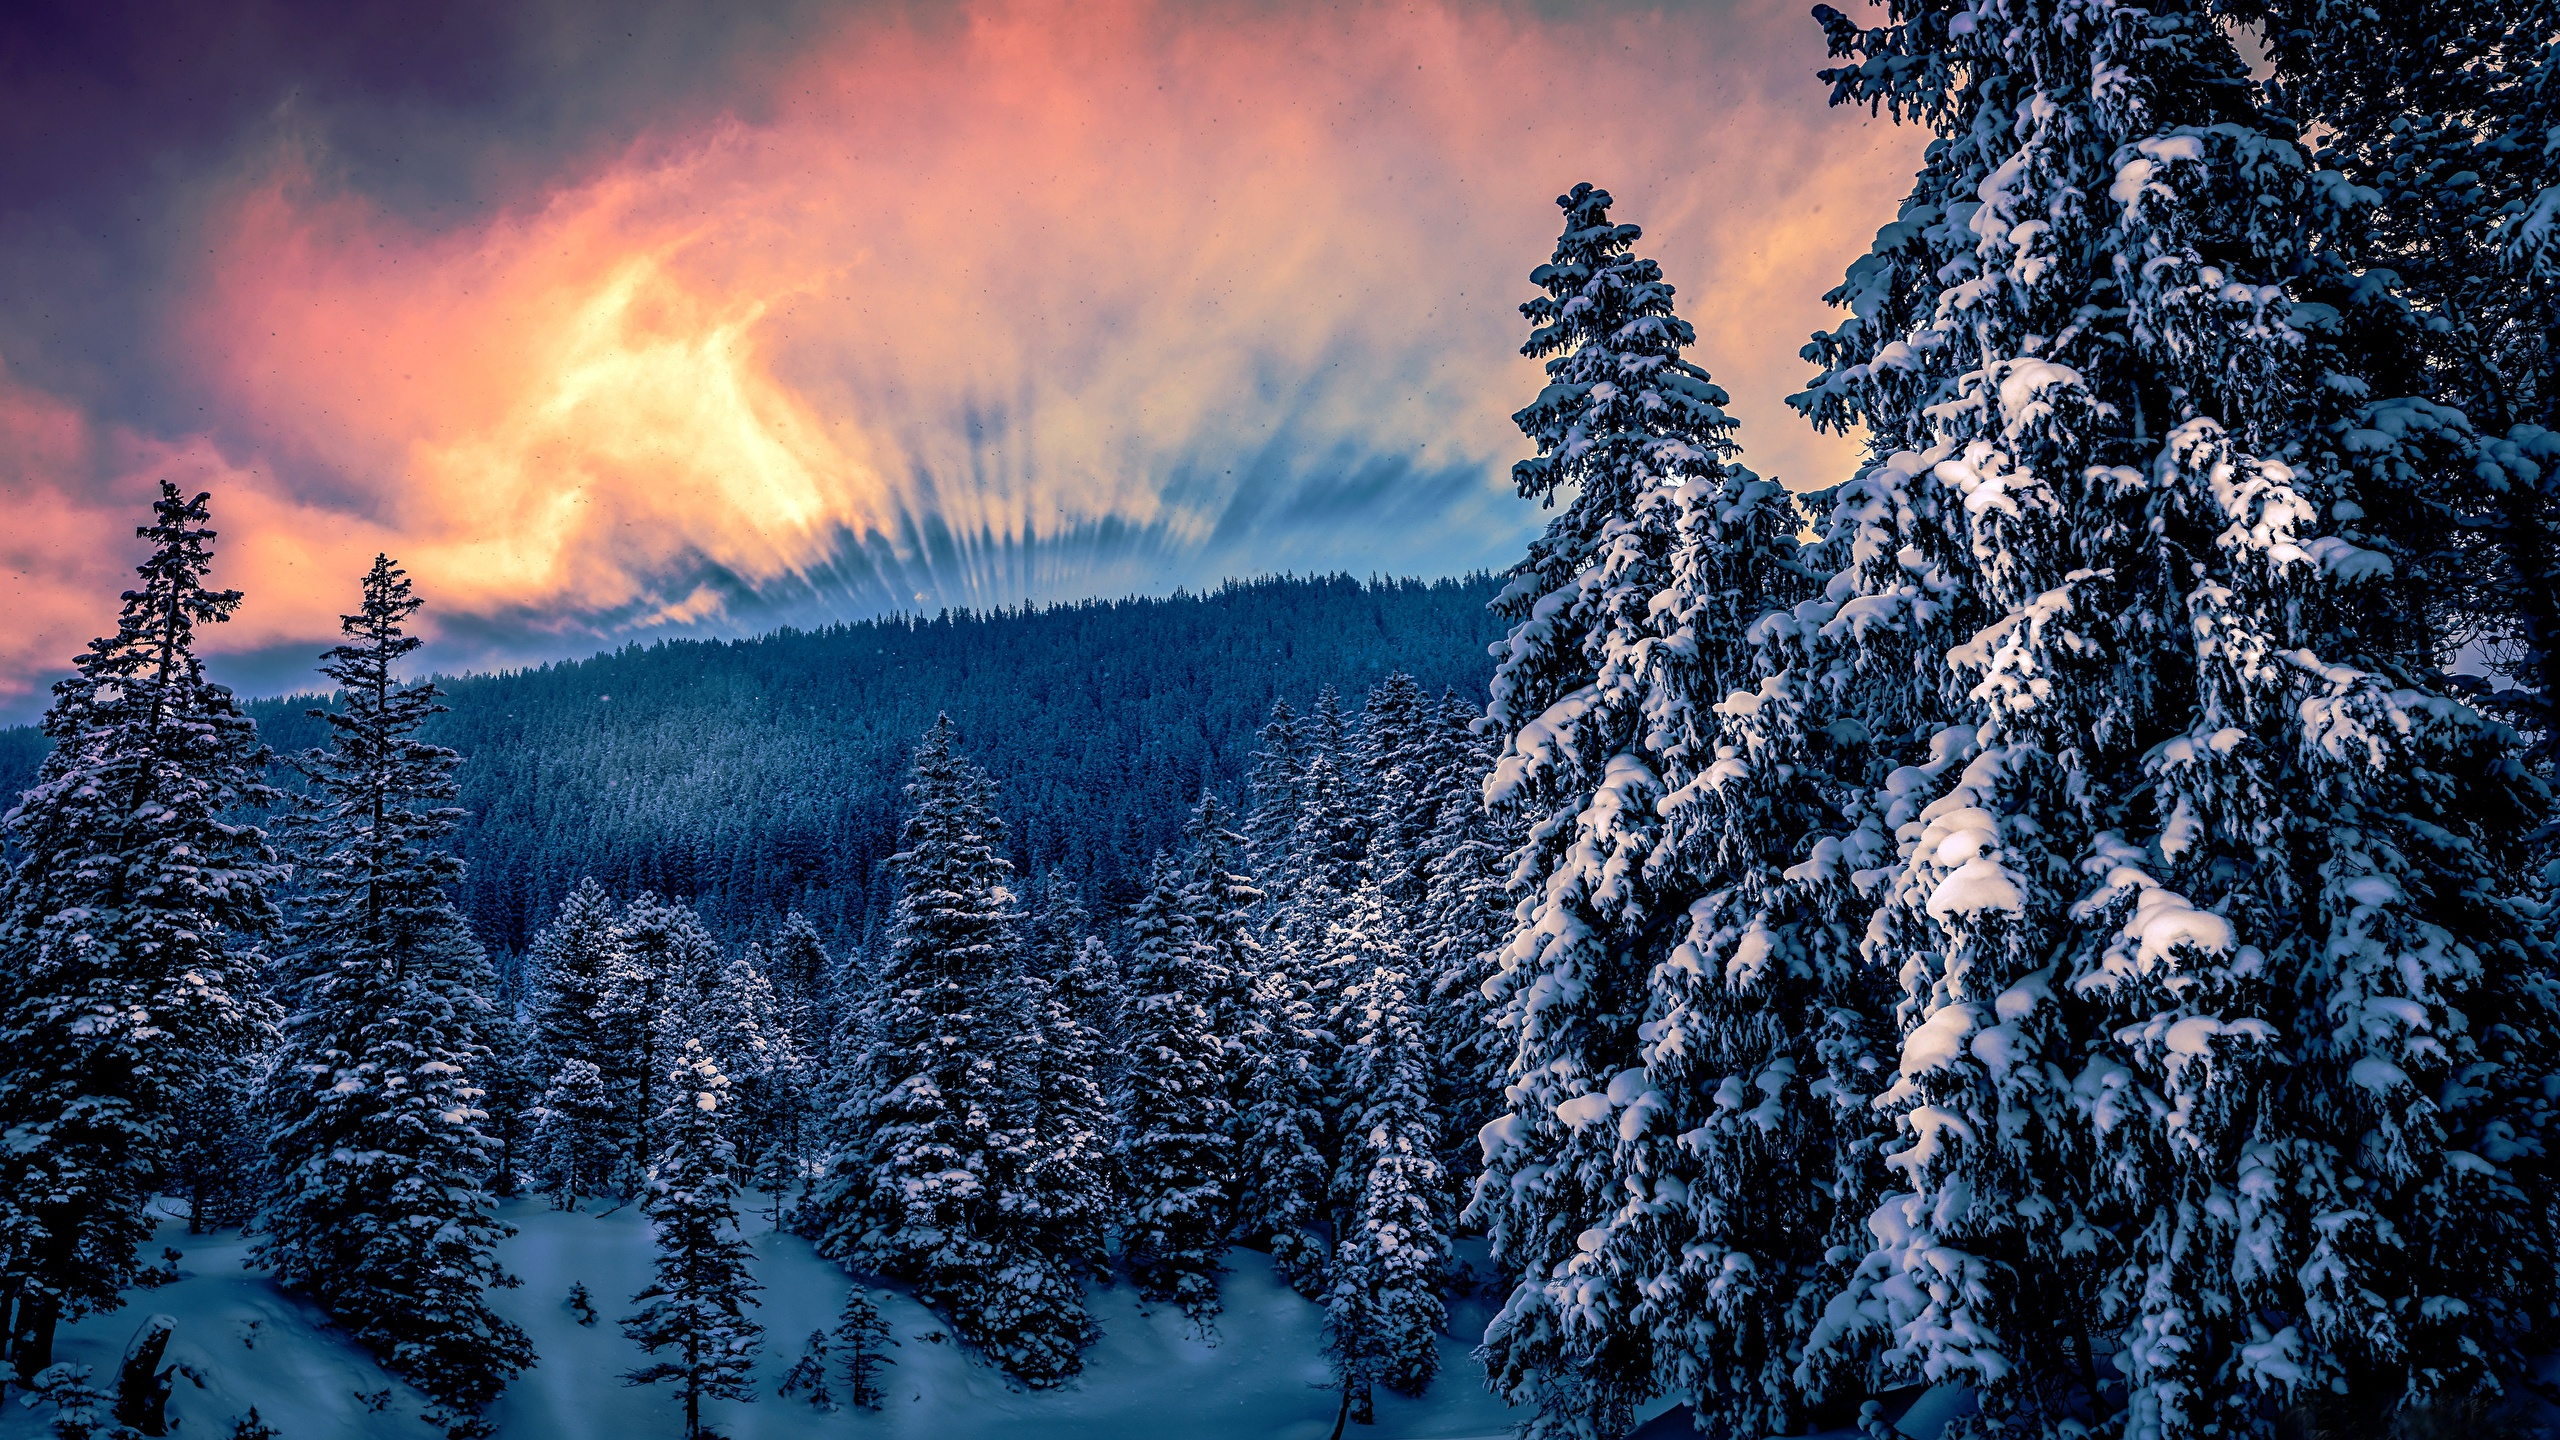 Wallpaper Winter Nature Snow Forests Trees 2560x1440